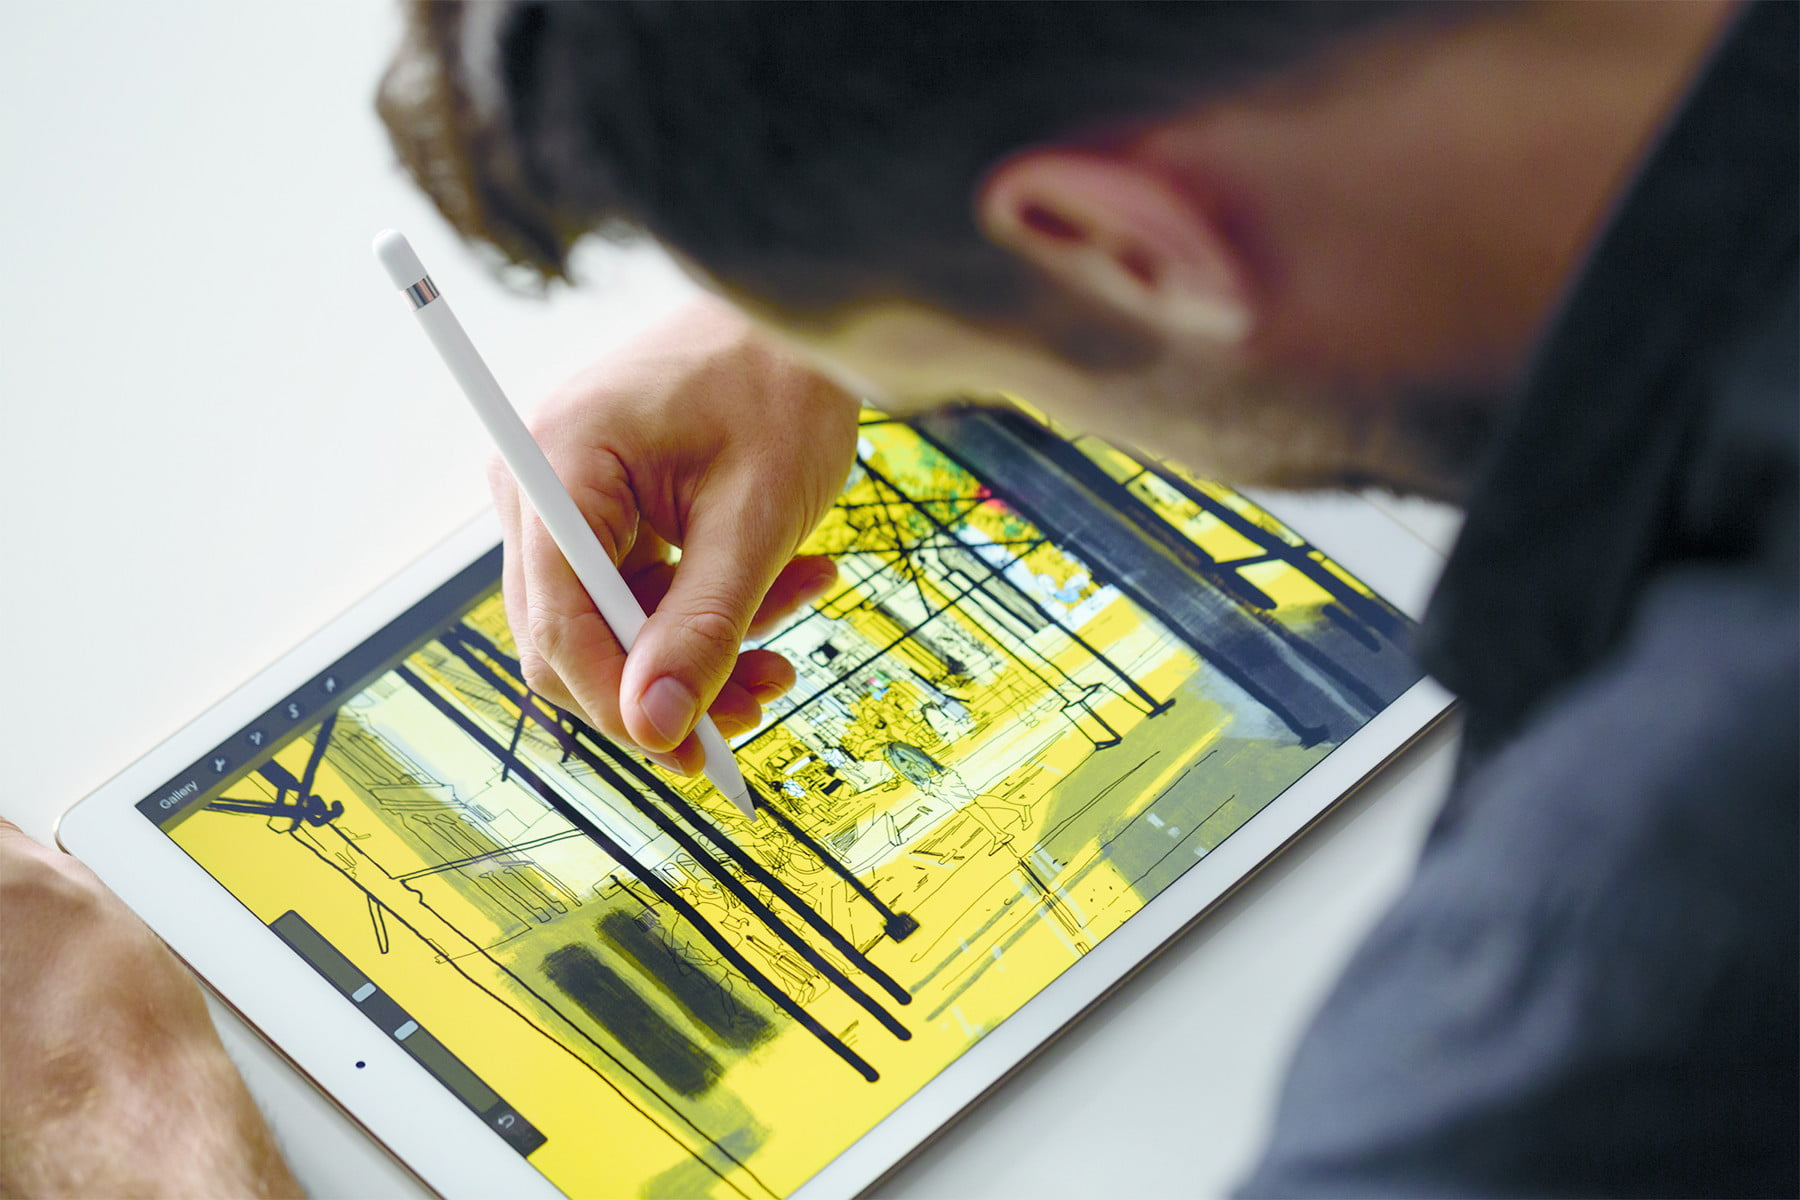 Take Note: Apple May Add Pencil Stylus Support to 2019 iPhone